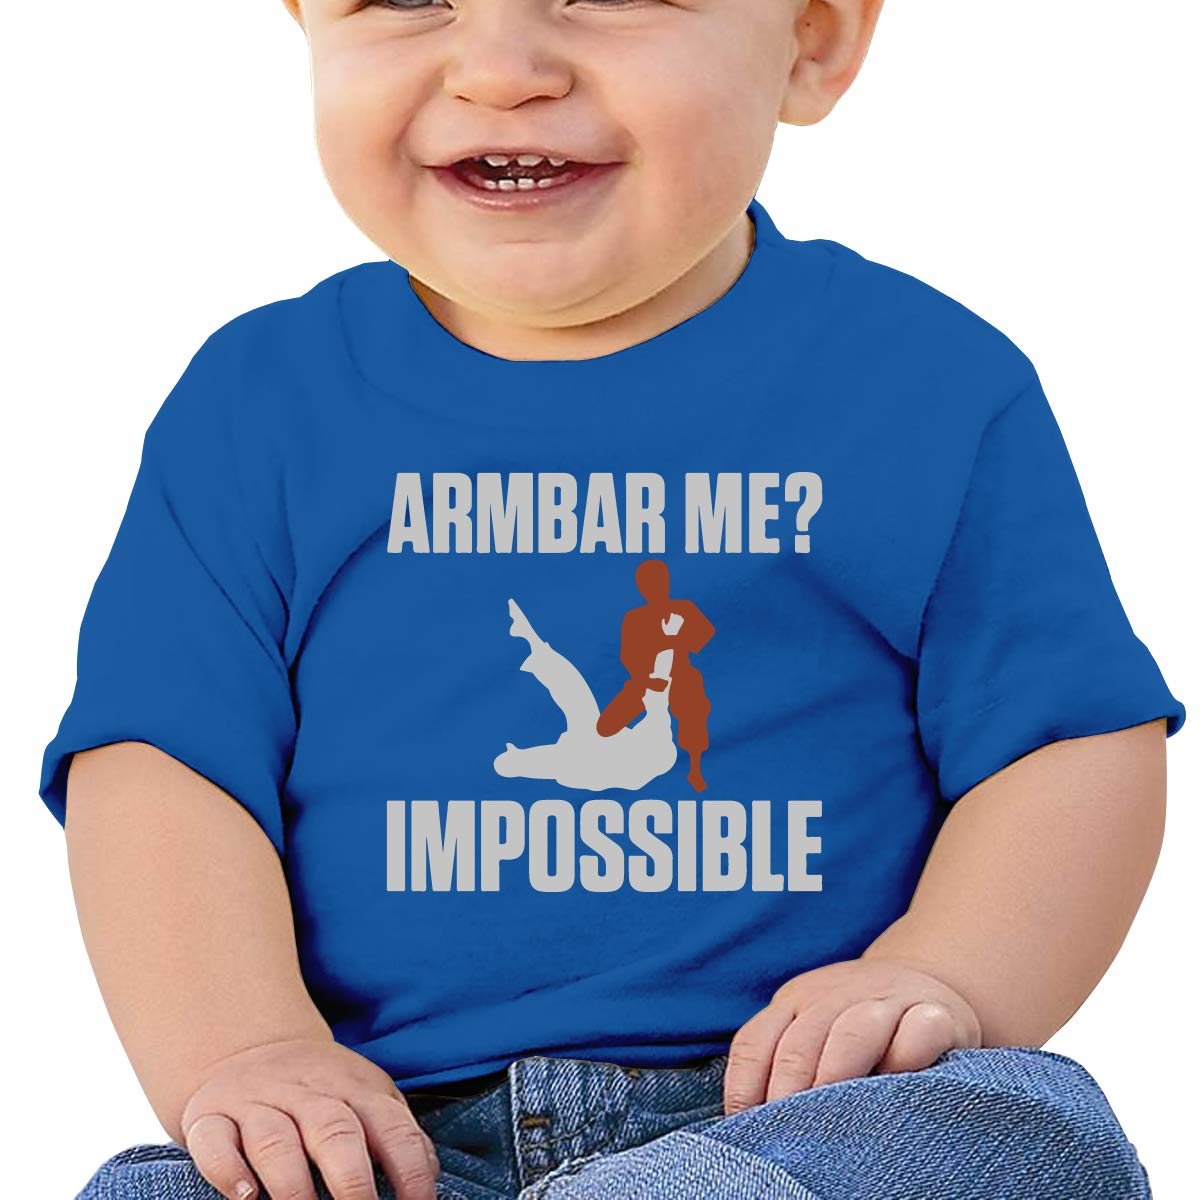 XHX403 Armbar Me Impossible Infant Kids T Shirt Cotton Tee Toddler Baby 6-18M